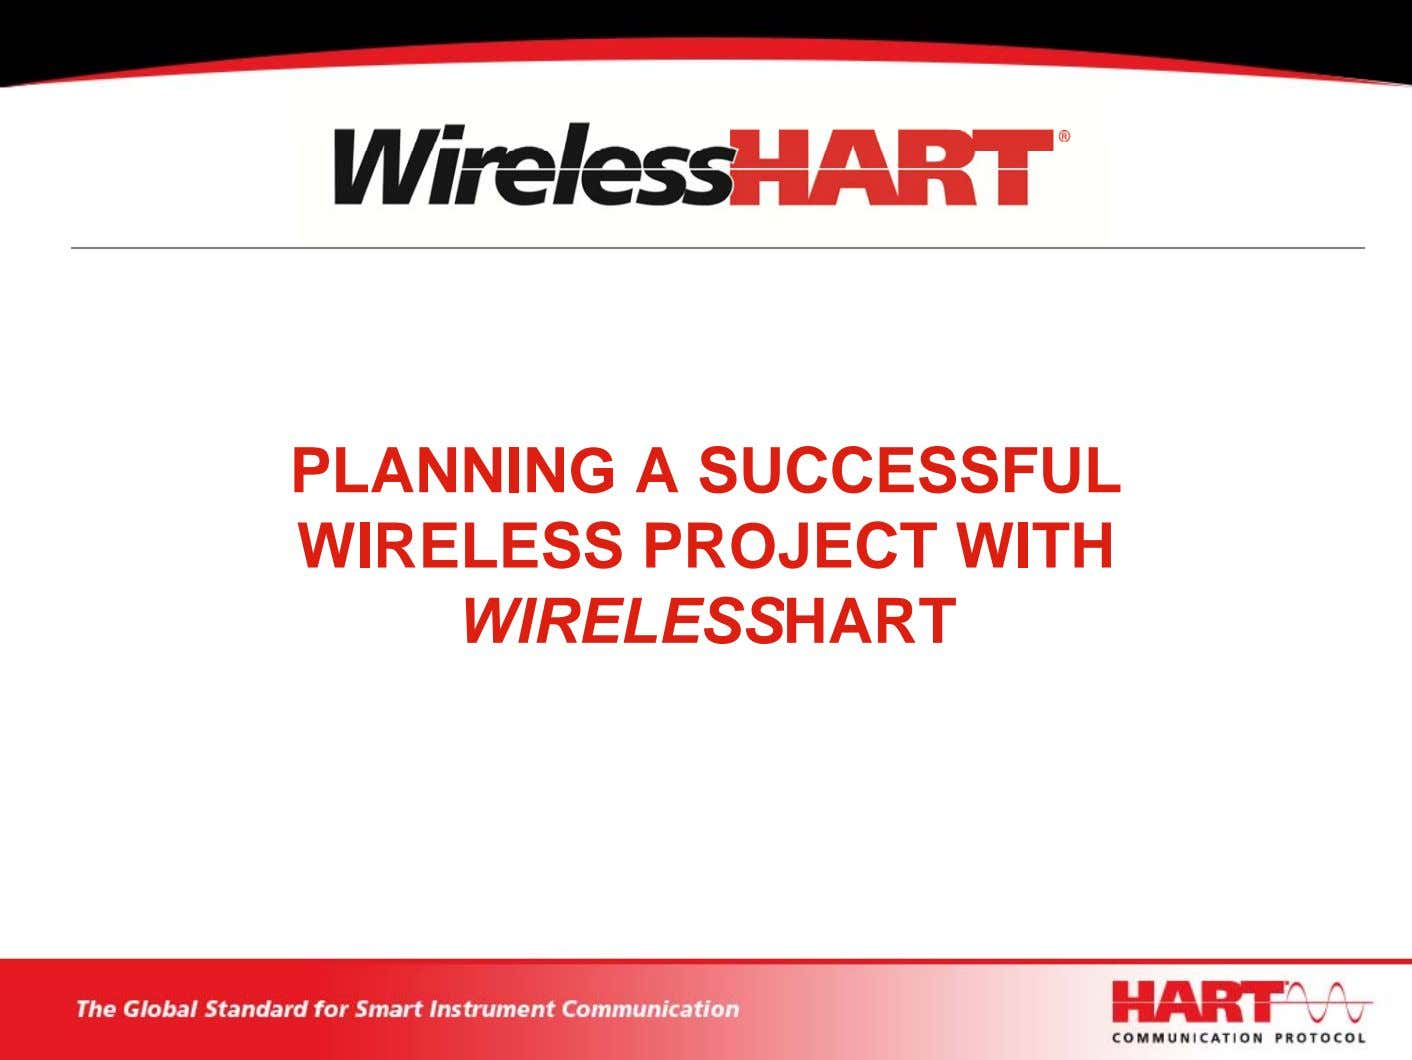 PLANNING A SUCCESSFUL WIRELESS PROJECT WITH WIRELESSHART